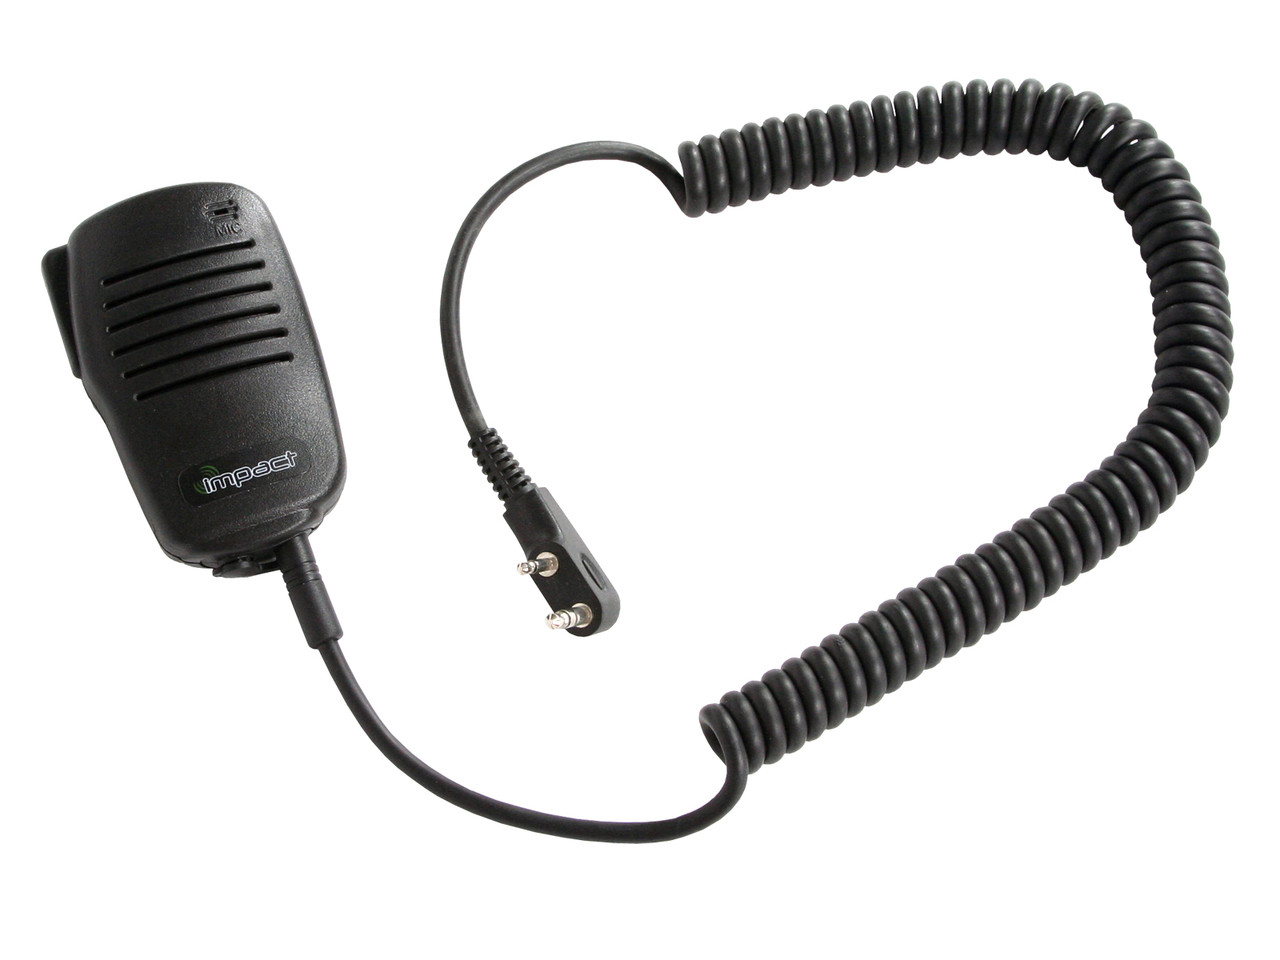 Imact SRSM-MD1 Silver Series Compact Speaker Mic for Motorola Two Way Radios